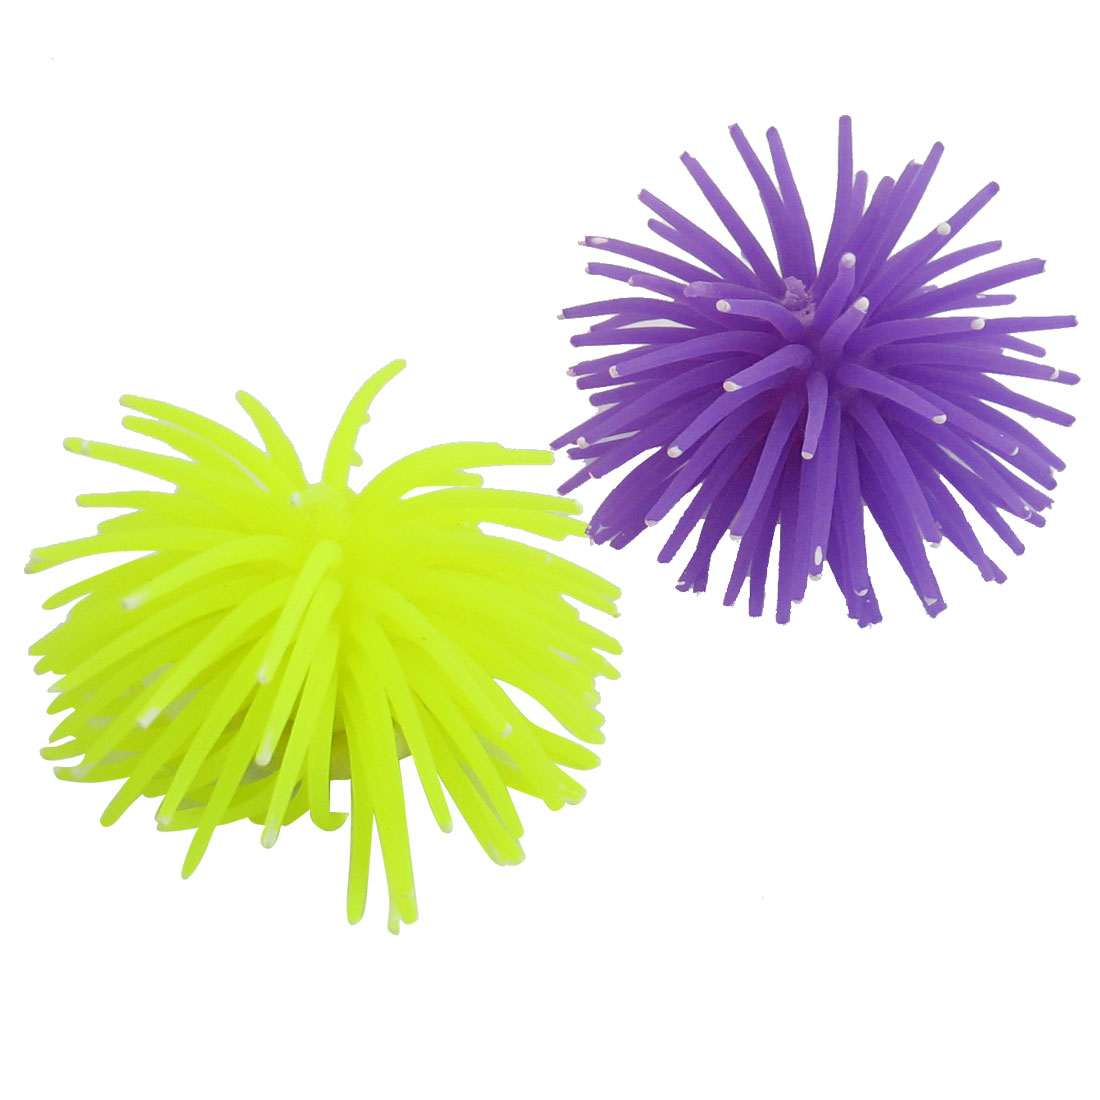 2 Pcs White Dotted Purple Yellow Soft Silicone Corals Decor for Fish Tank